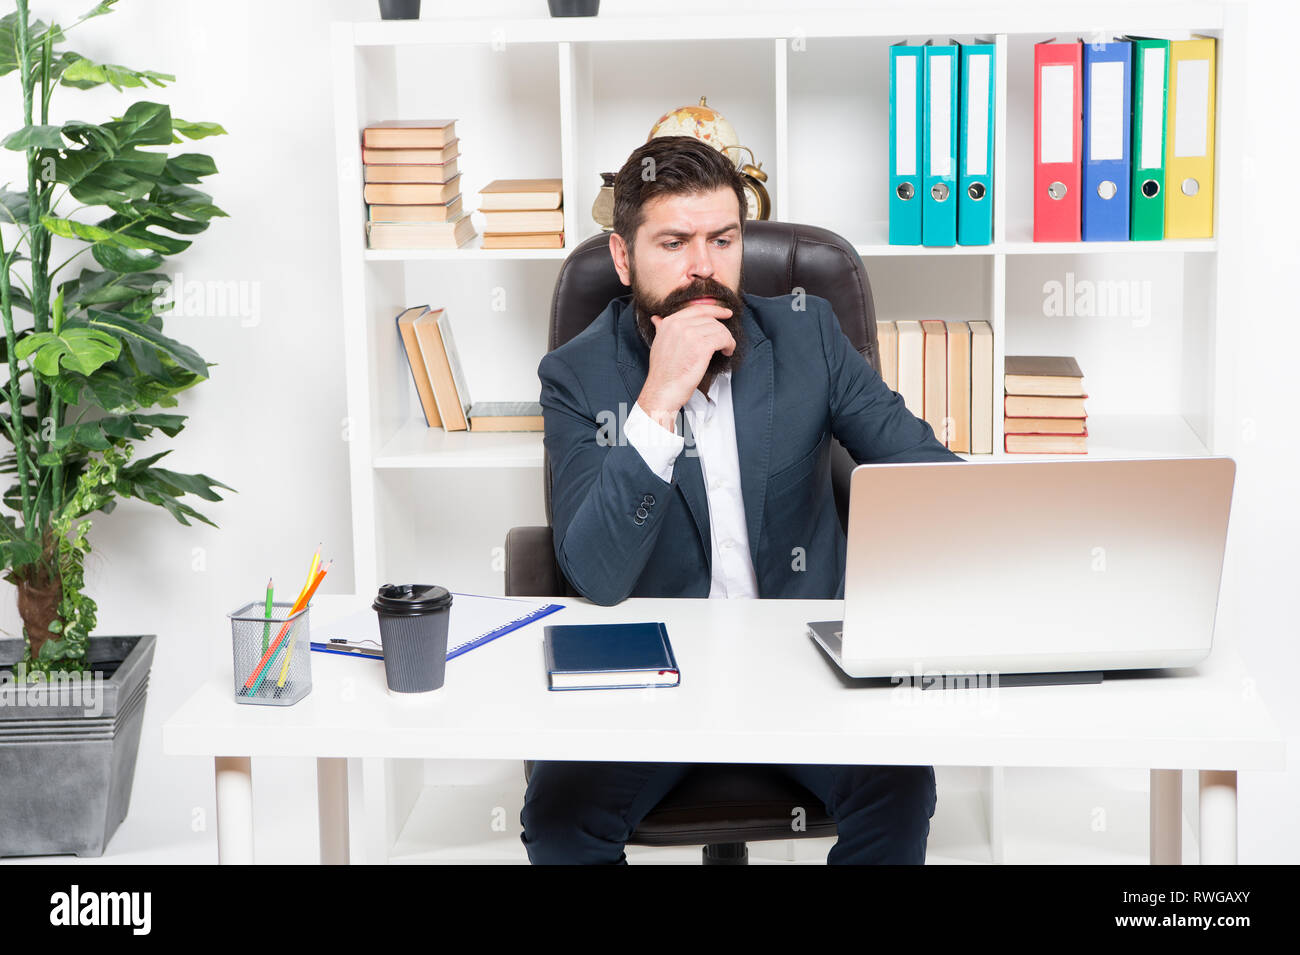 Broker tracks financial indicators. Man bearded hipster boss sit in leather armchair office interior. Boss at workplace. Manager formal corporate style working. Business people. Busy boss in office. - Stock Image